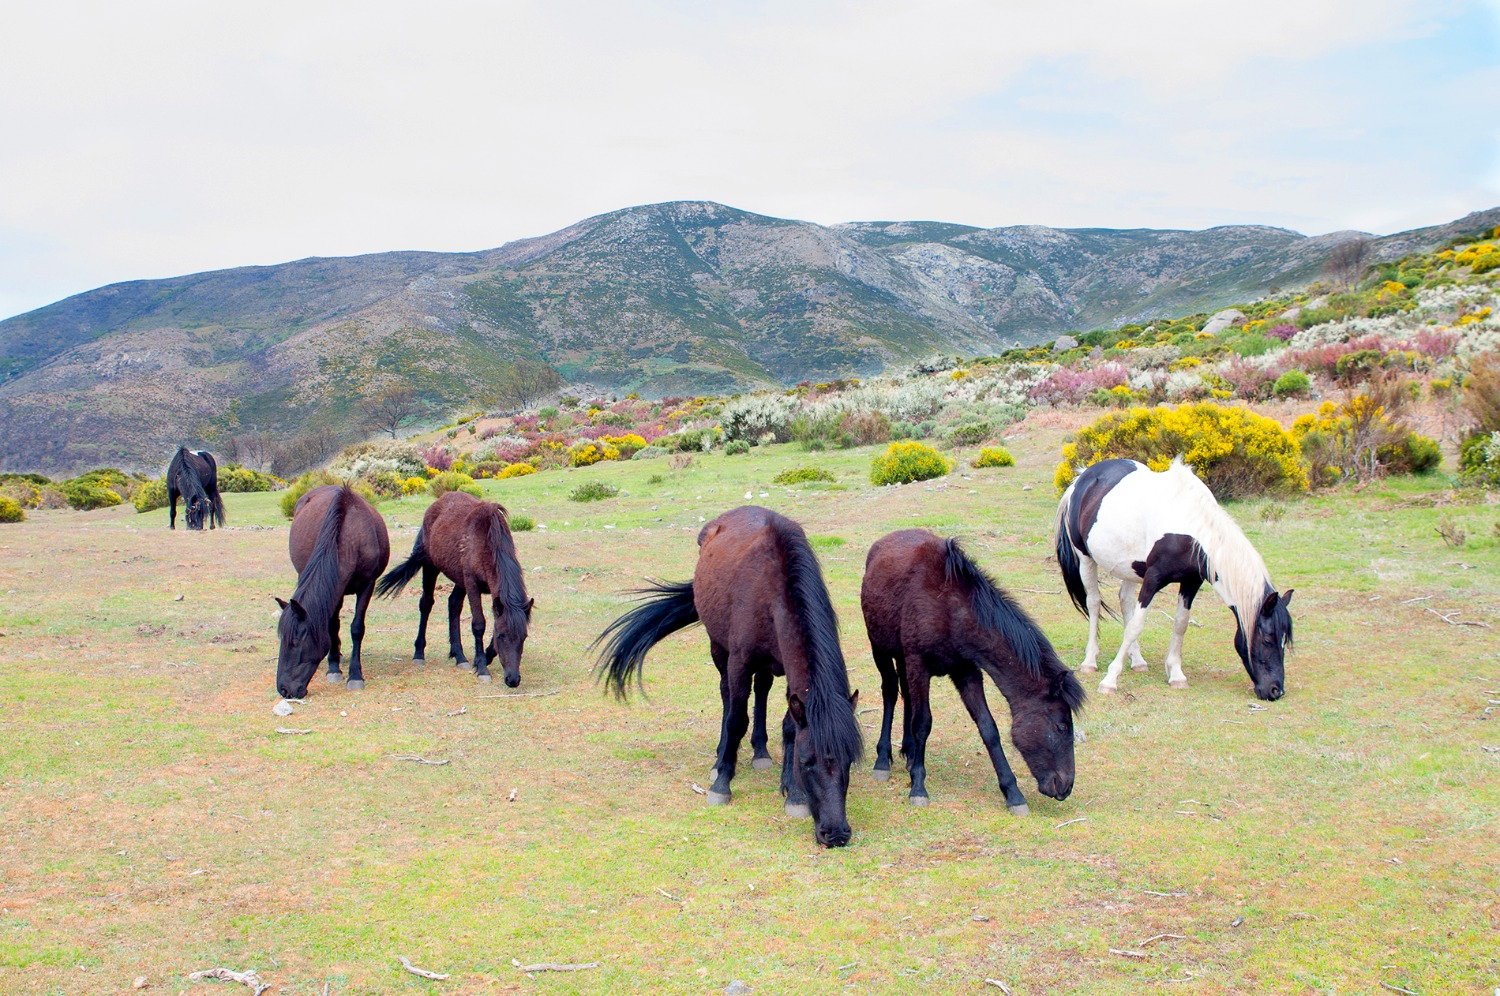 Wild Horses grazing in Spain